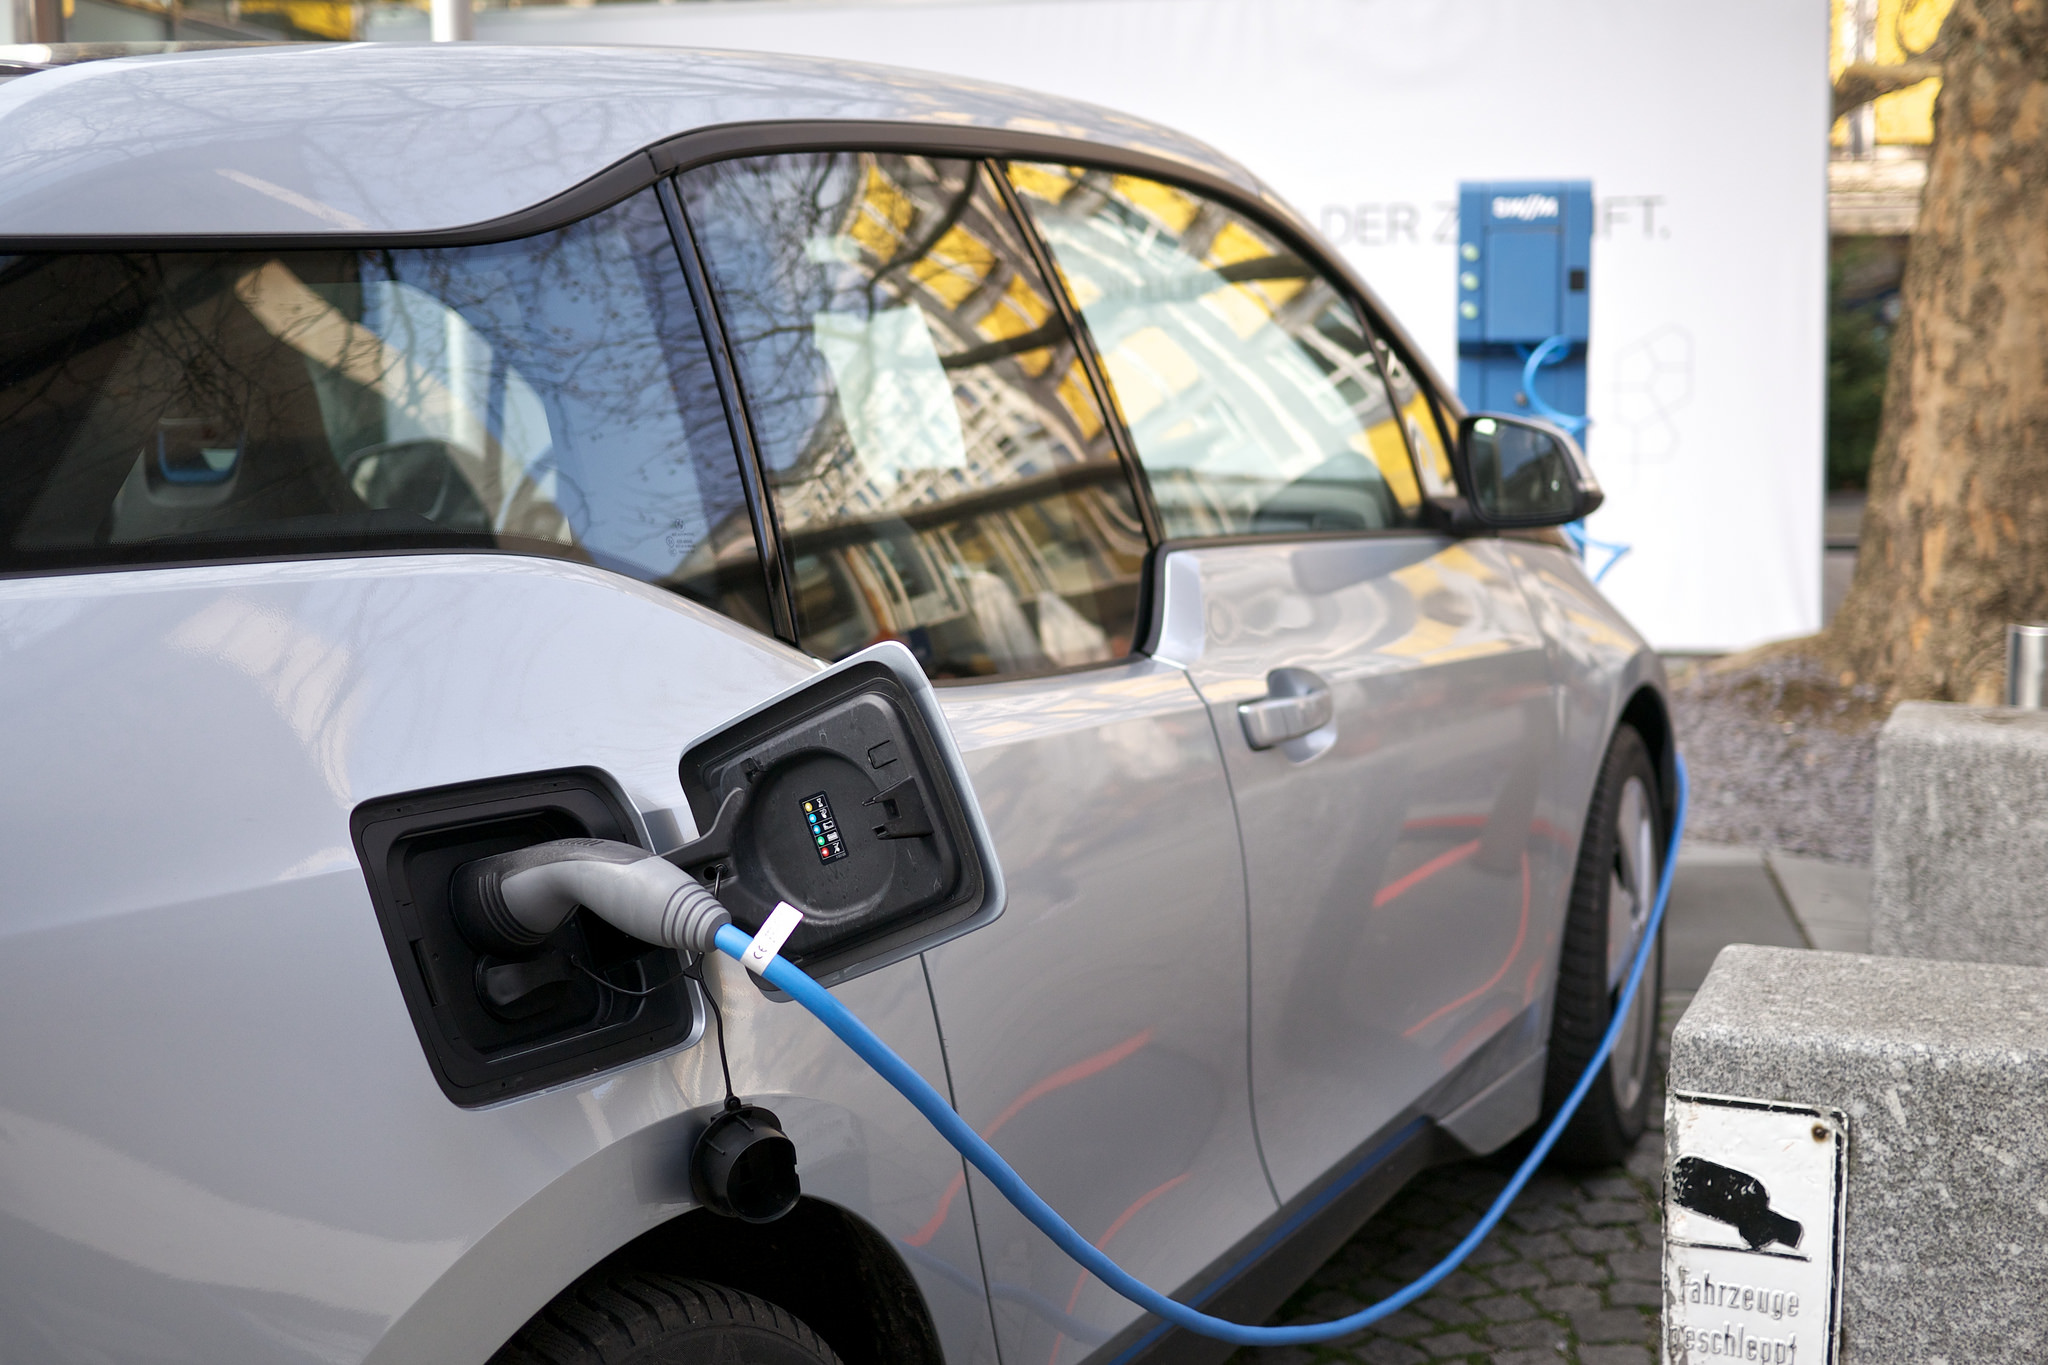 The 2020s Could Be Decade When Electric Cars Take Over Mit Comparison Between And Gasoline Technology Review